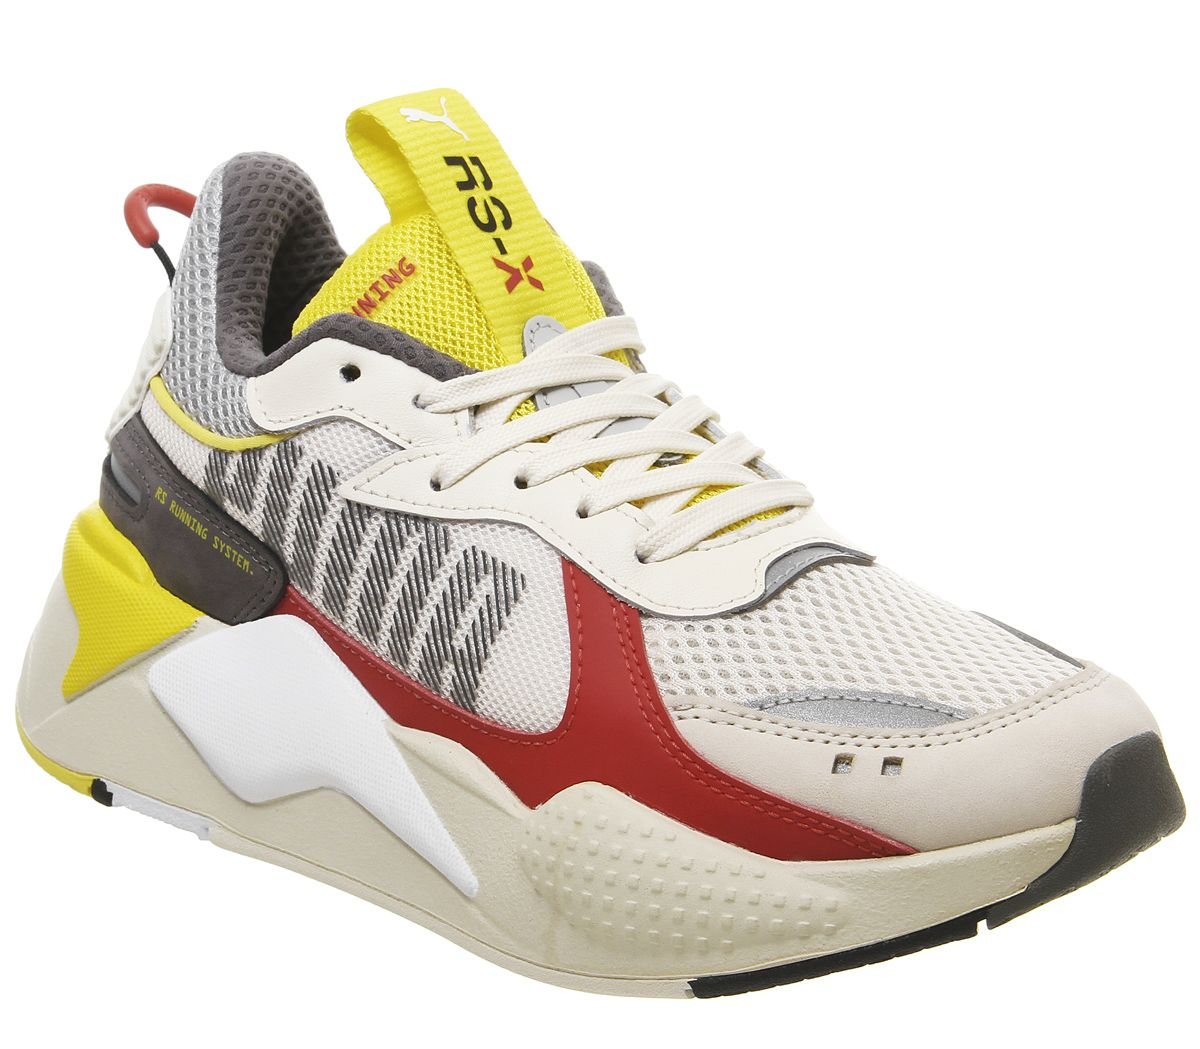 Details about Mens Puma Rs X Bold Trainers Whisper White High Rise Red Blazing Yellow Trainers